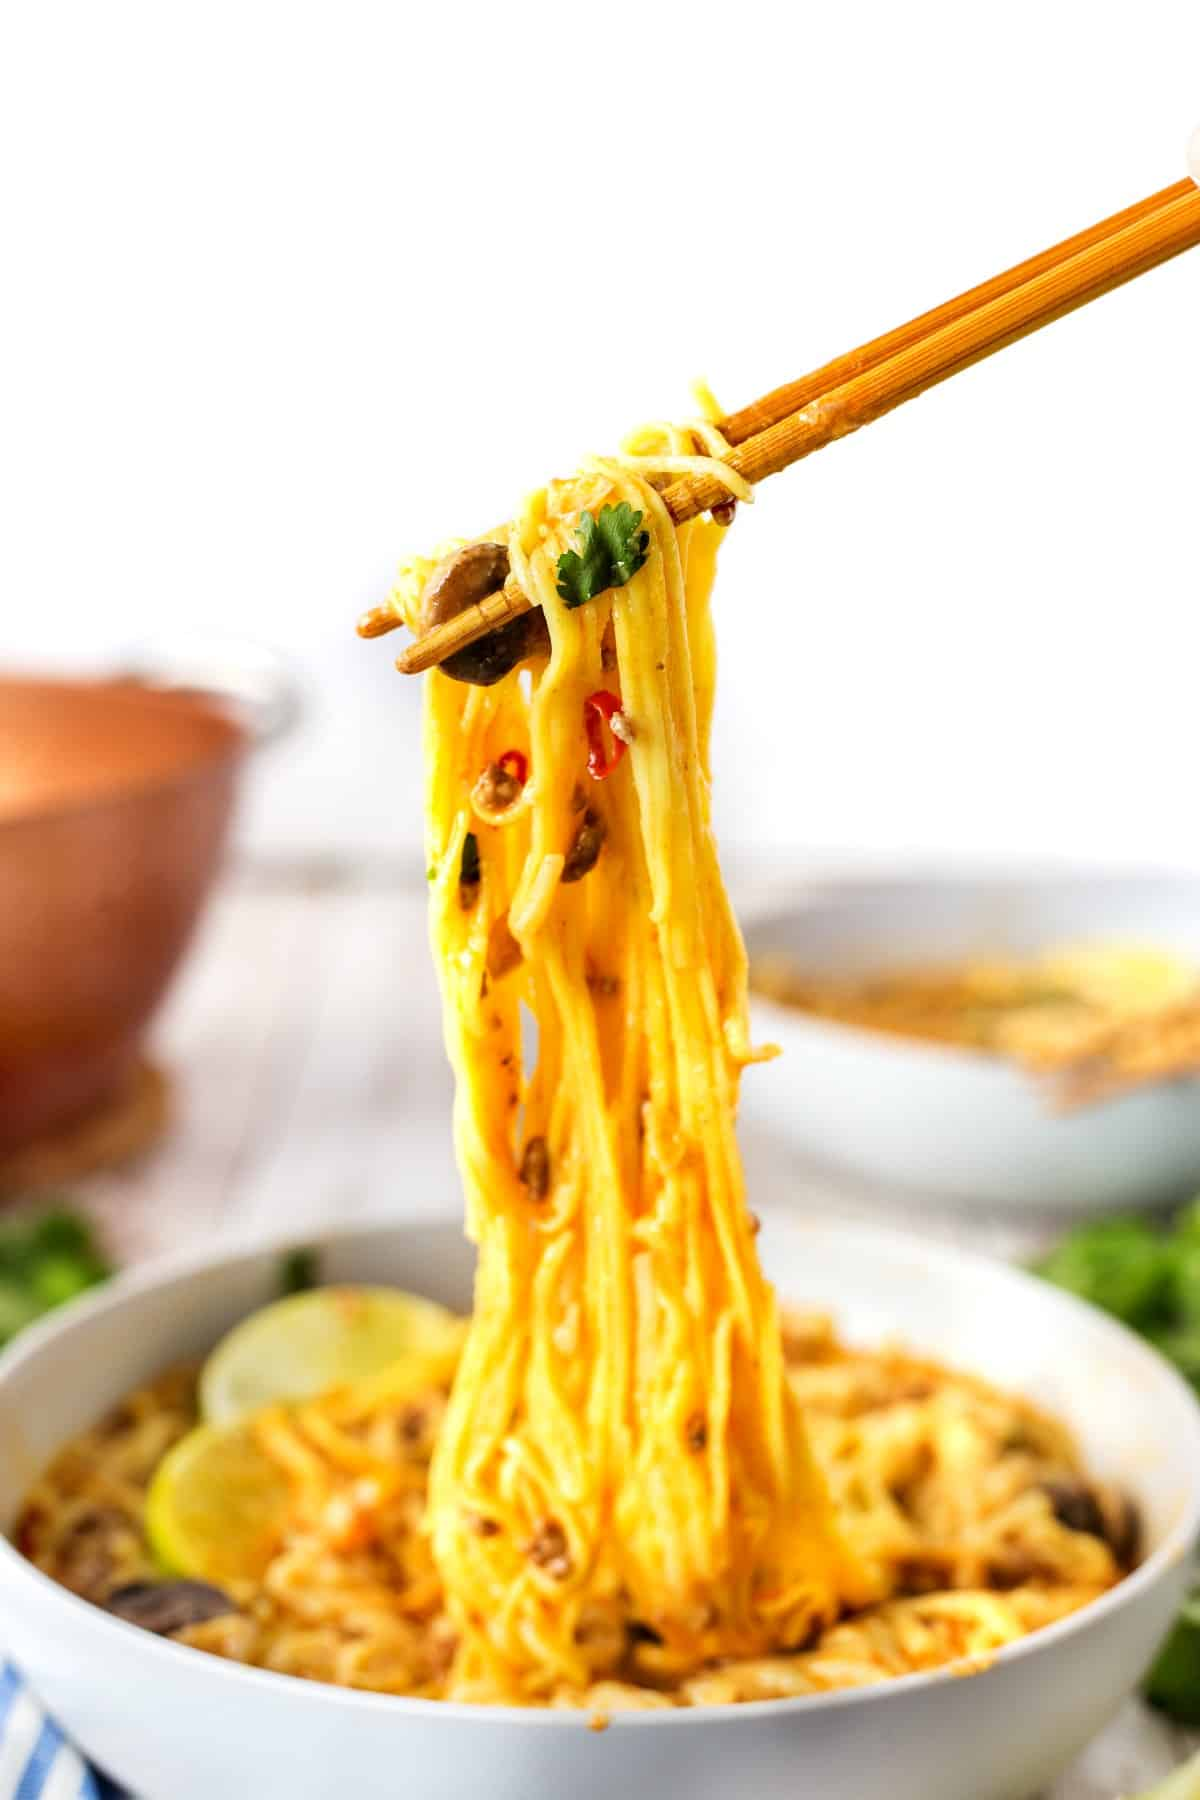 Pulling noodles from the bowl with chopsticks.